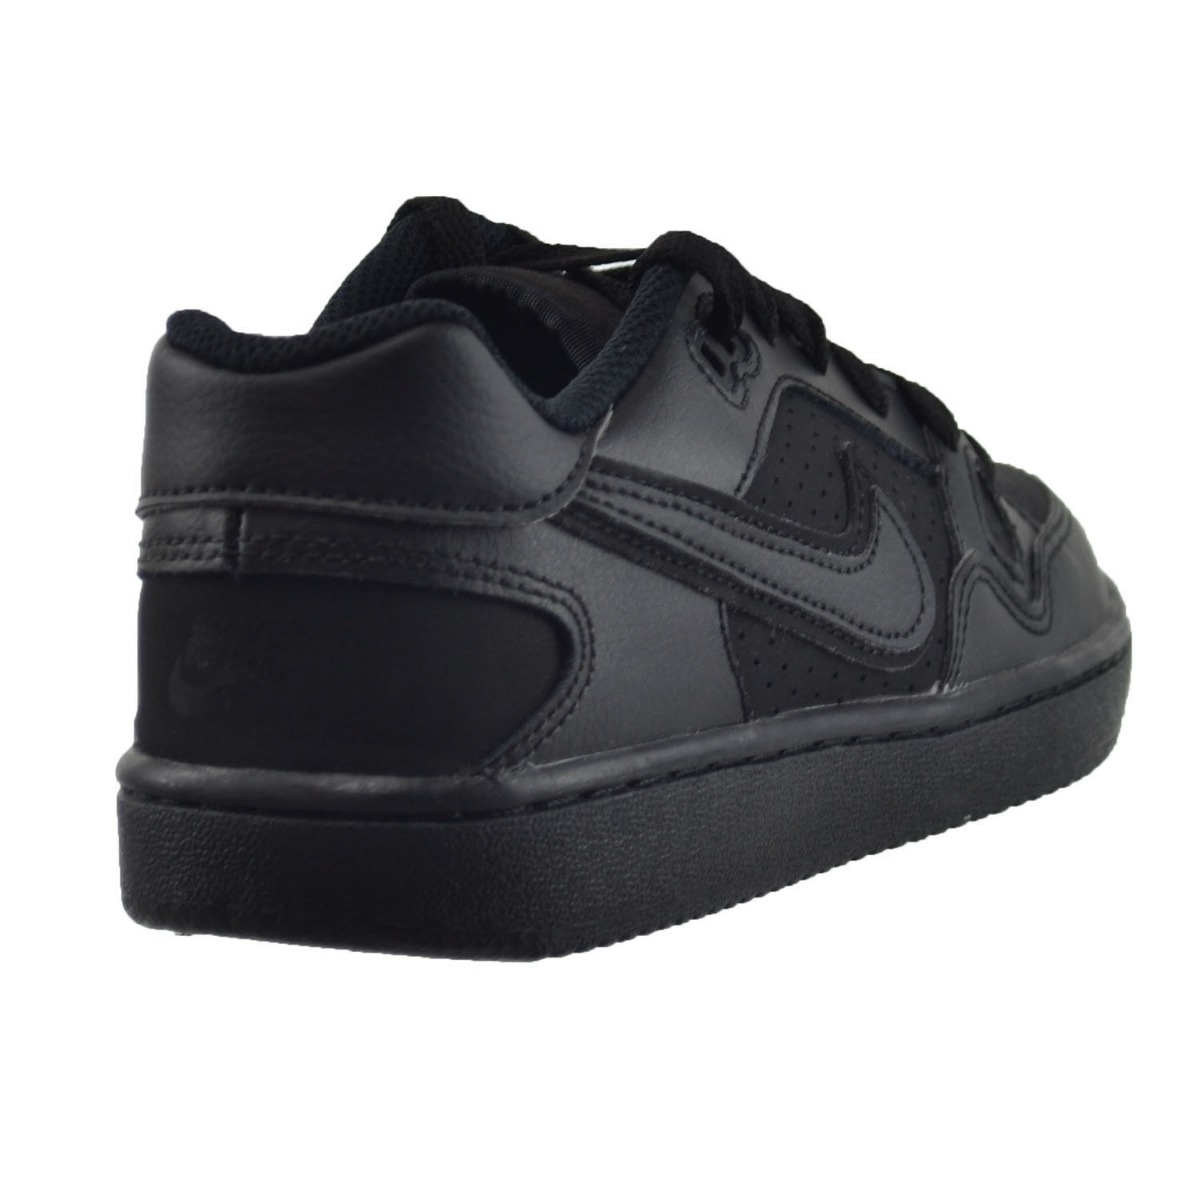 3fc01792e4d Cargando zoom... tenis nike son of force mujer correr gym mujer skate casual